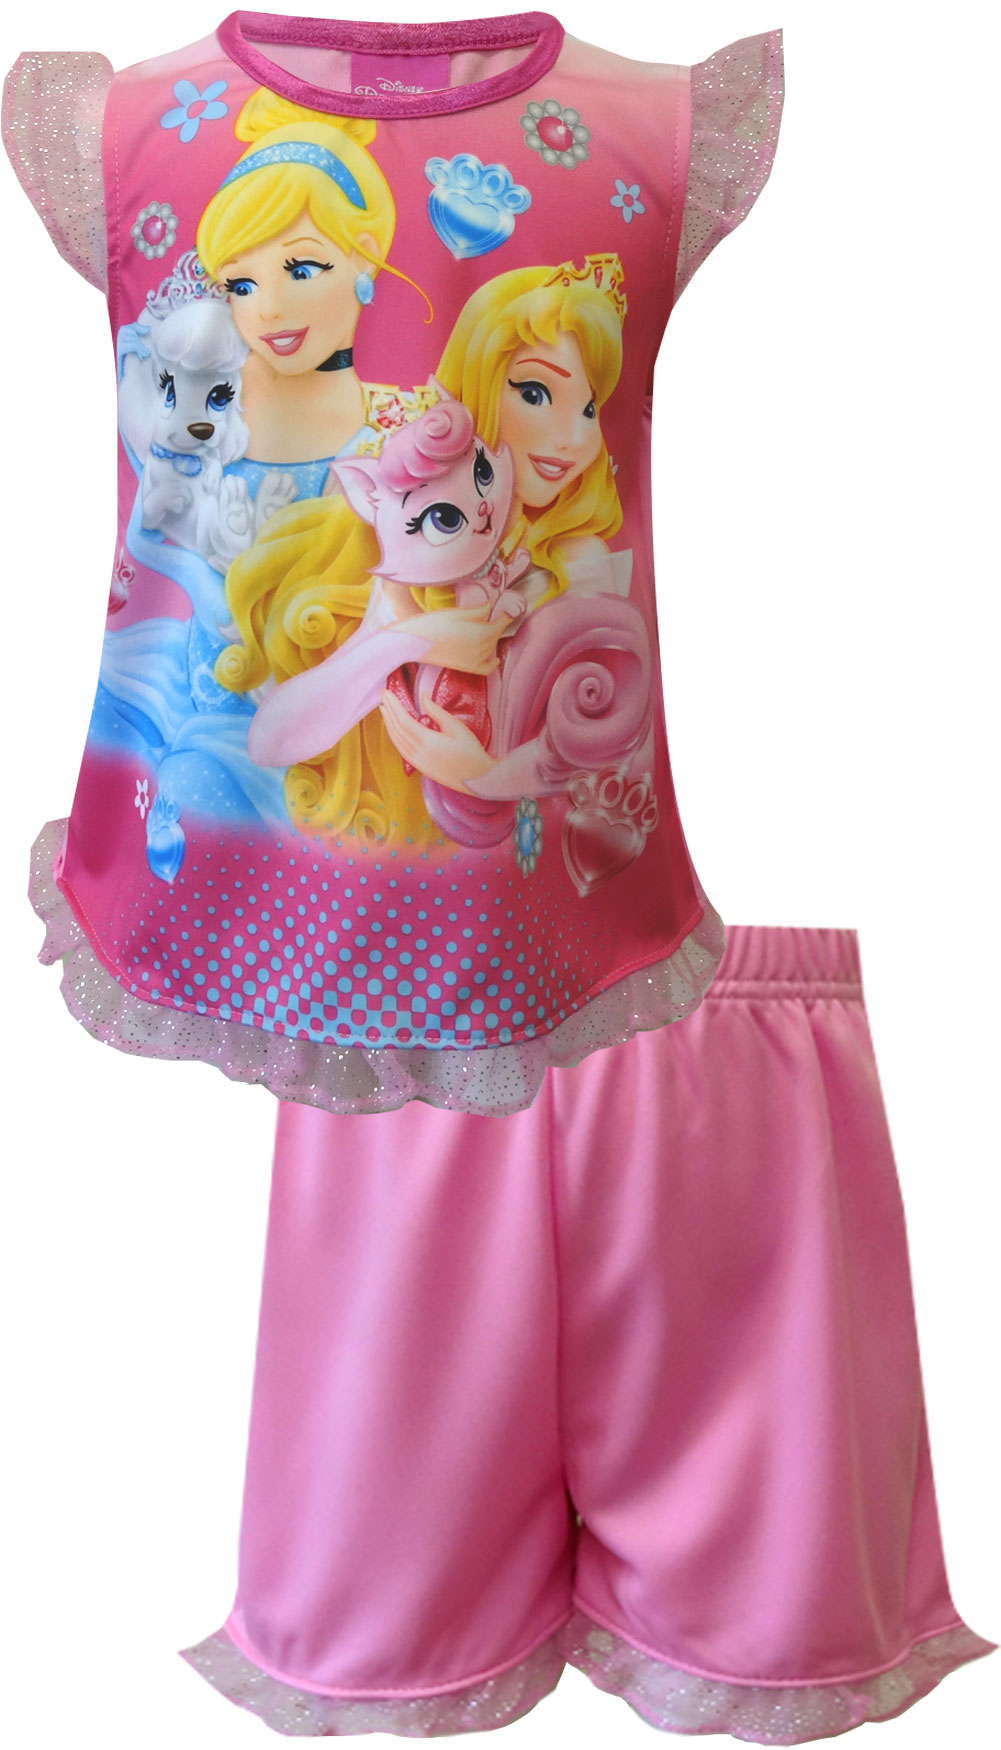 Image of Disney Cinderella & Sleeping Beauty Toddler Shortie PJ for girls